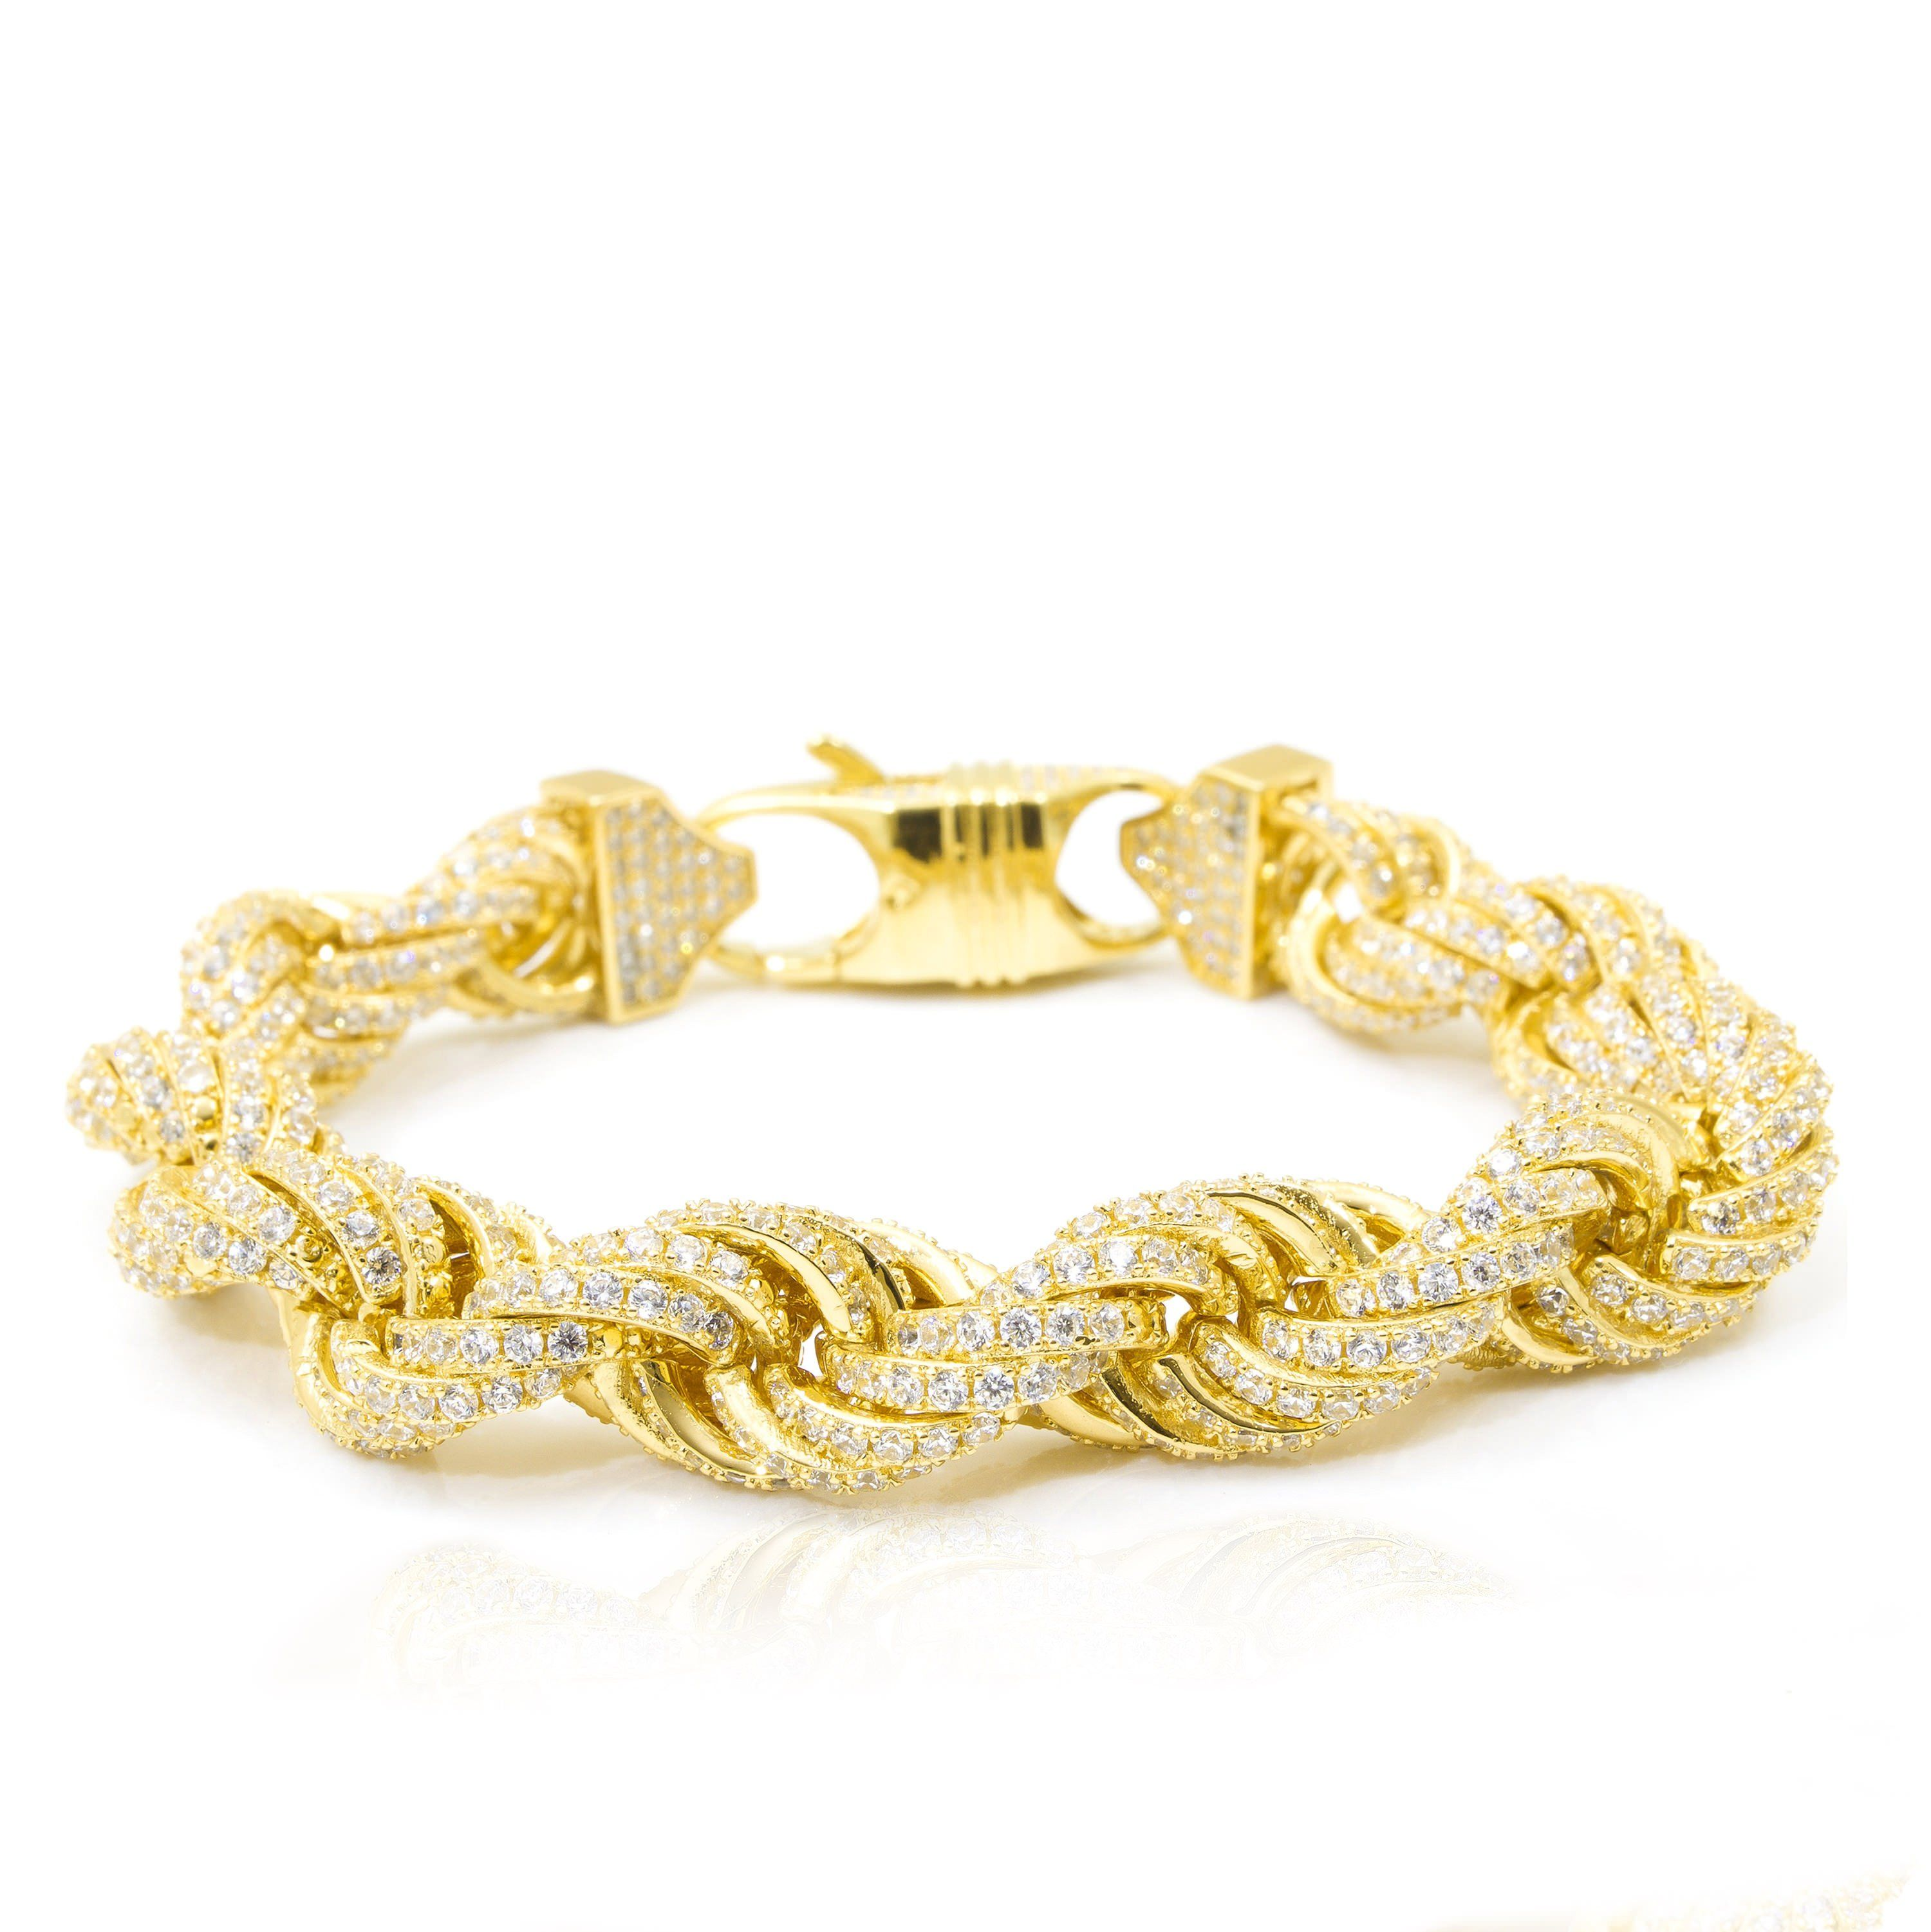 22227f5a81a20 Iced Out Rope Bracelet 11mm in 2019   tone   Bracelets, Jewelry ...